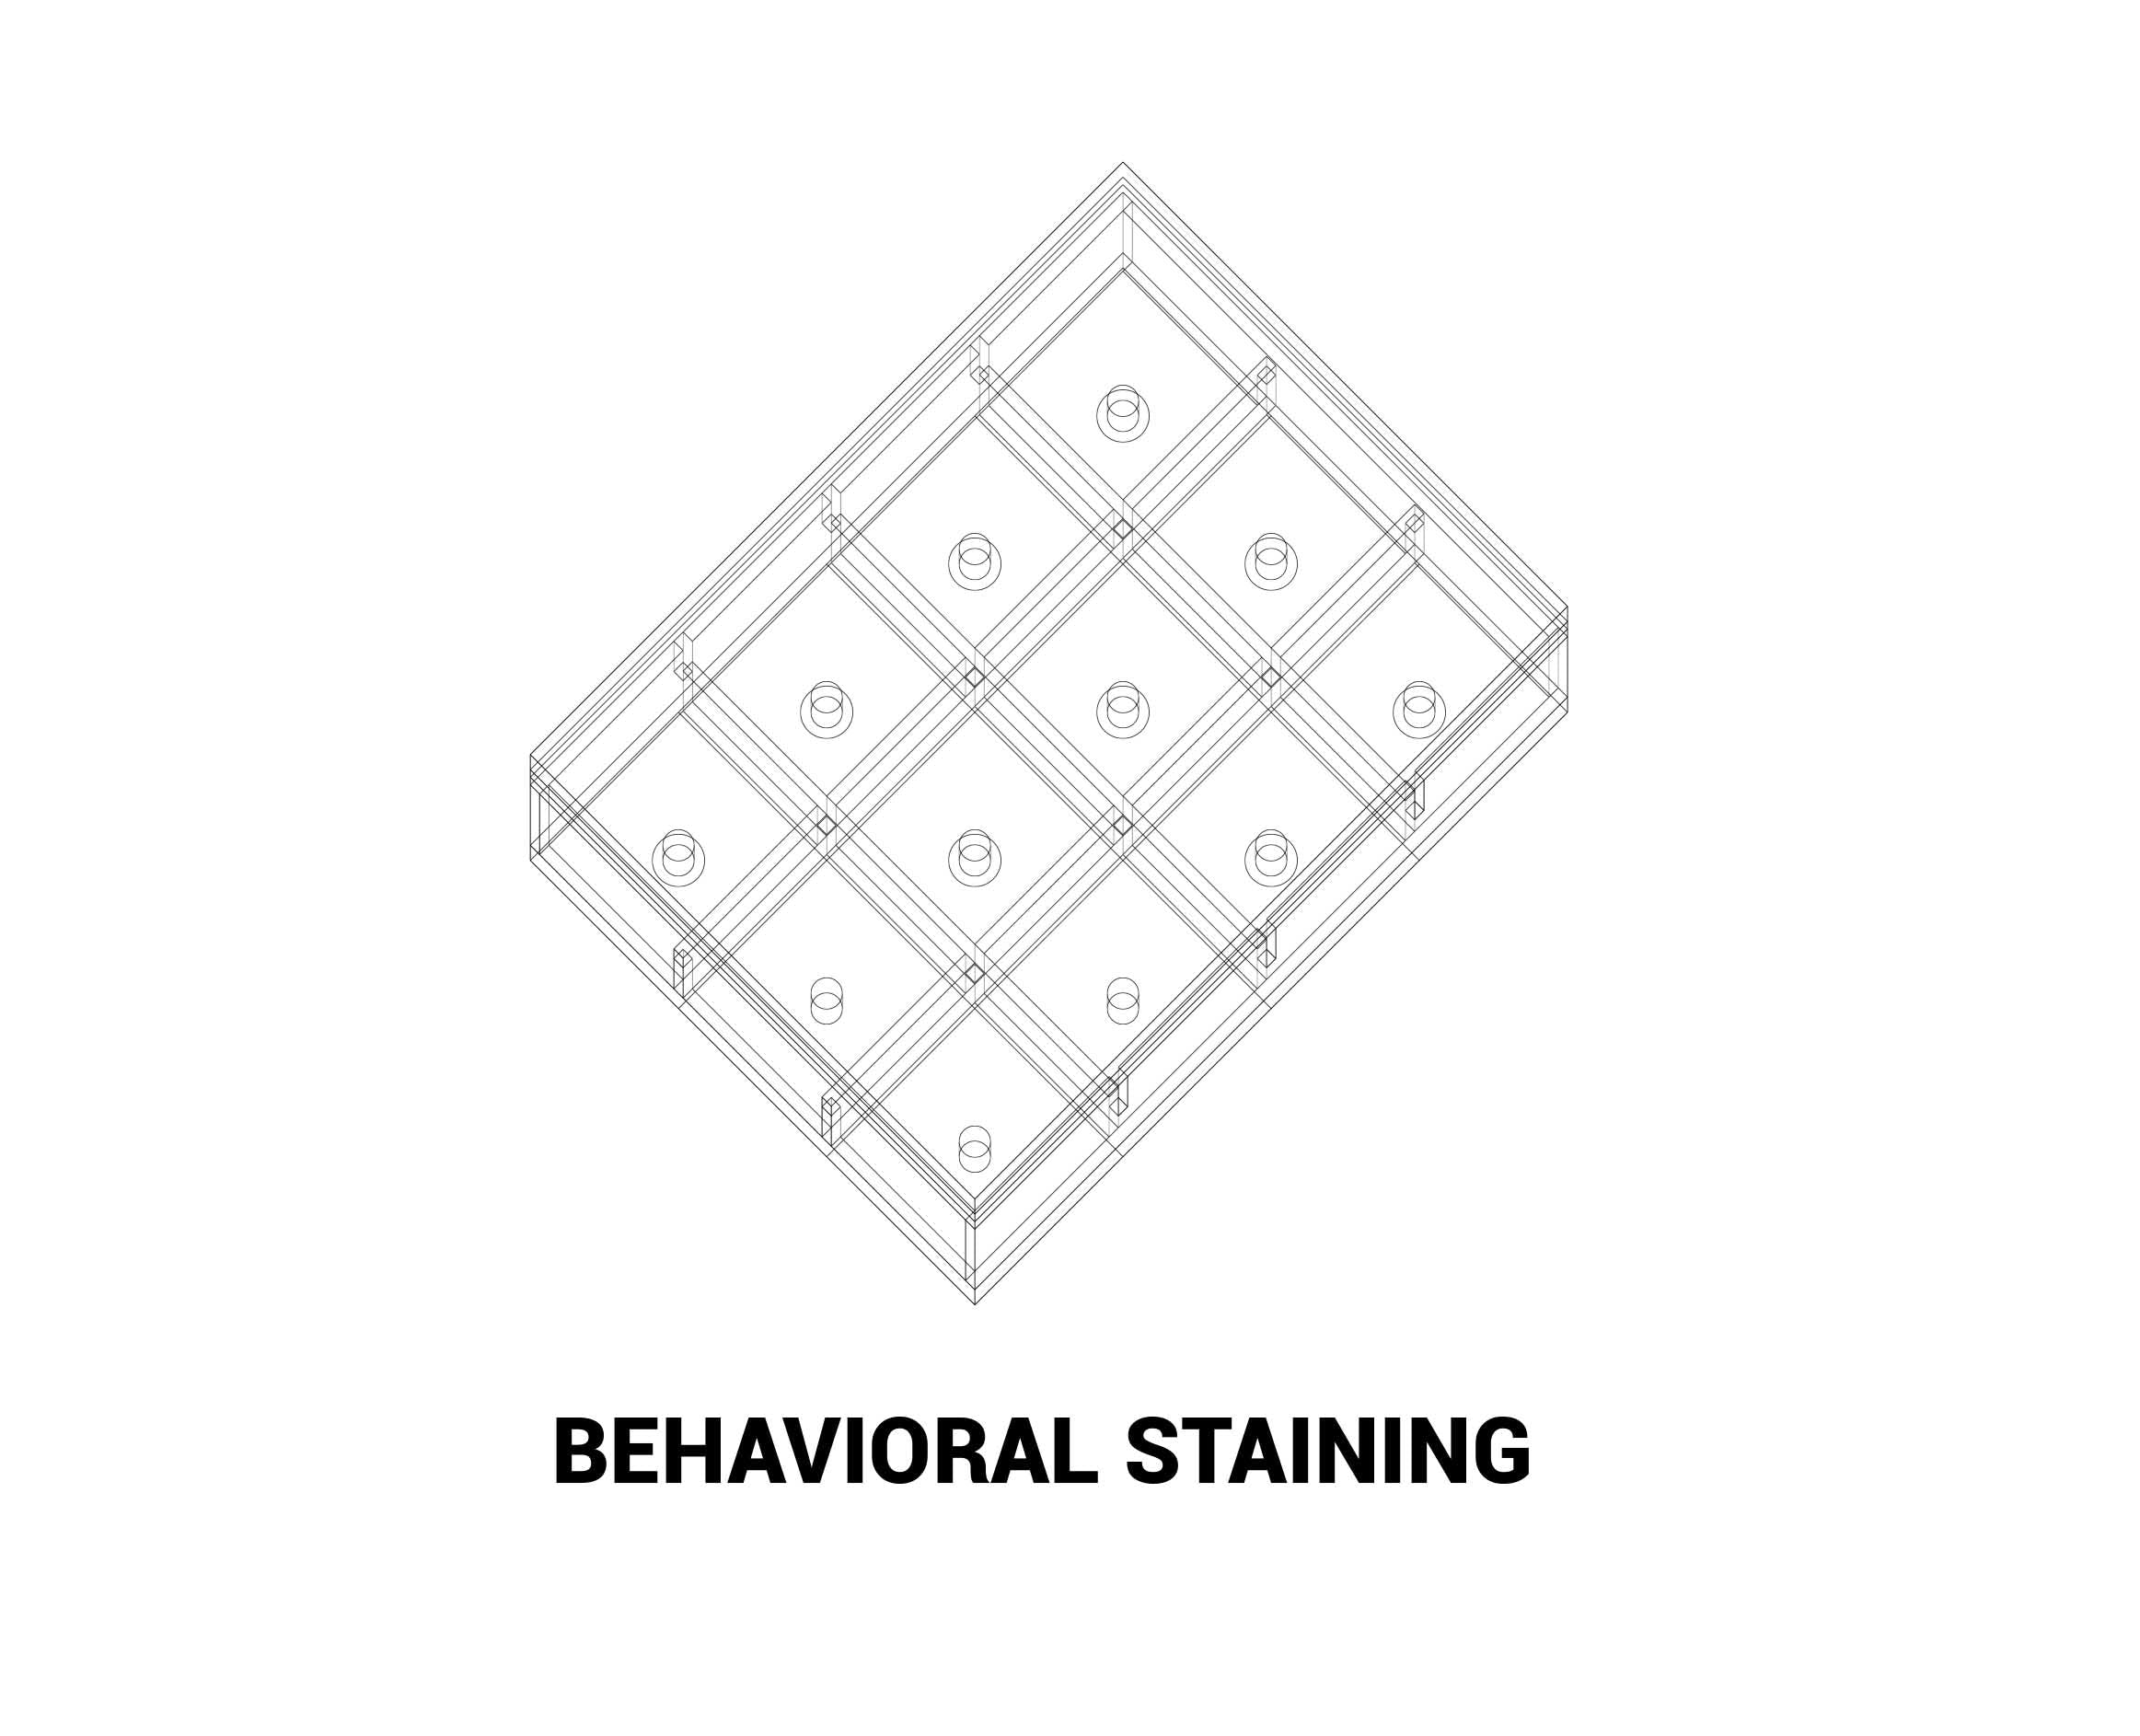 Behavior Staining